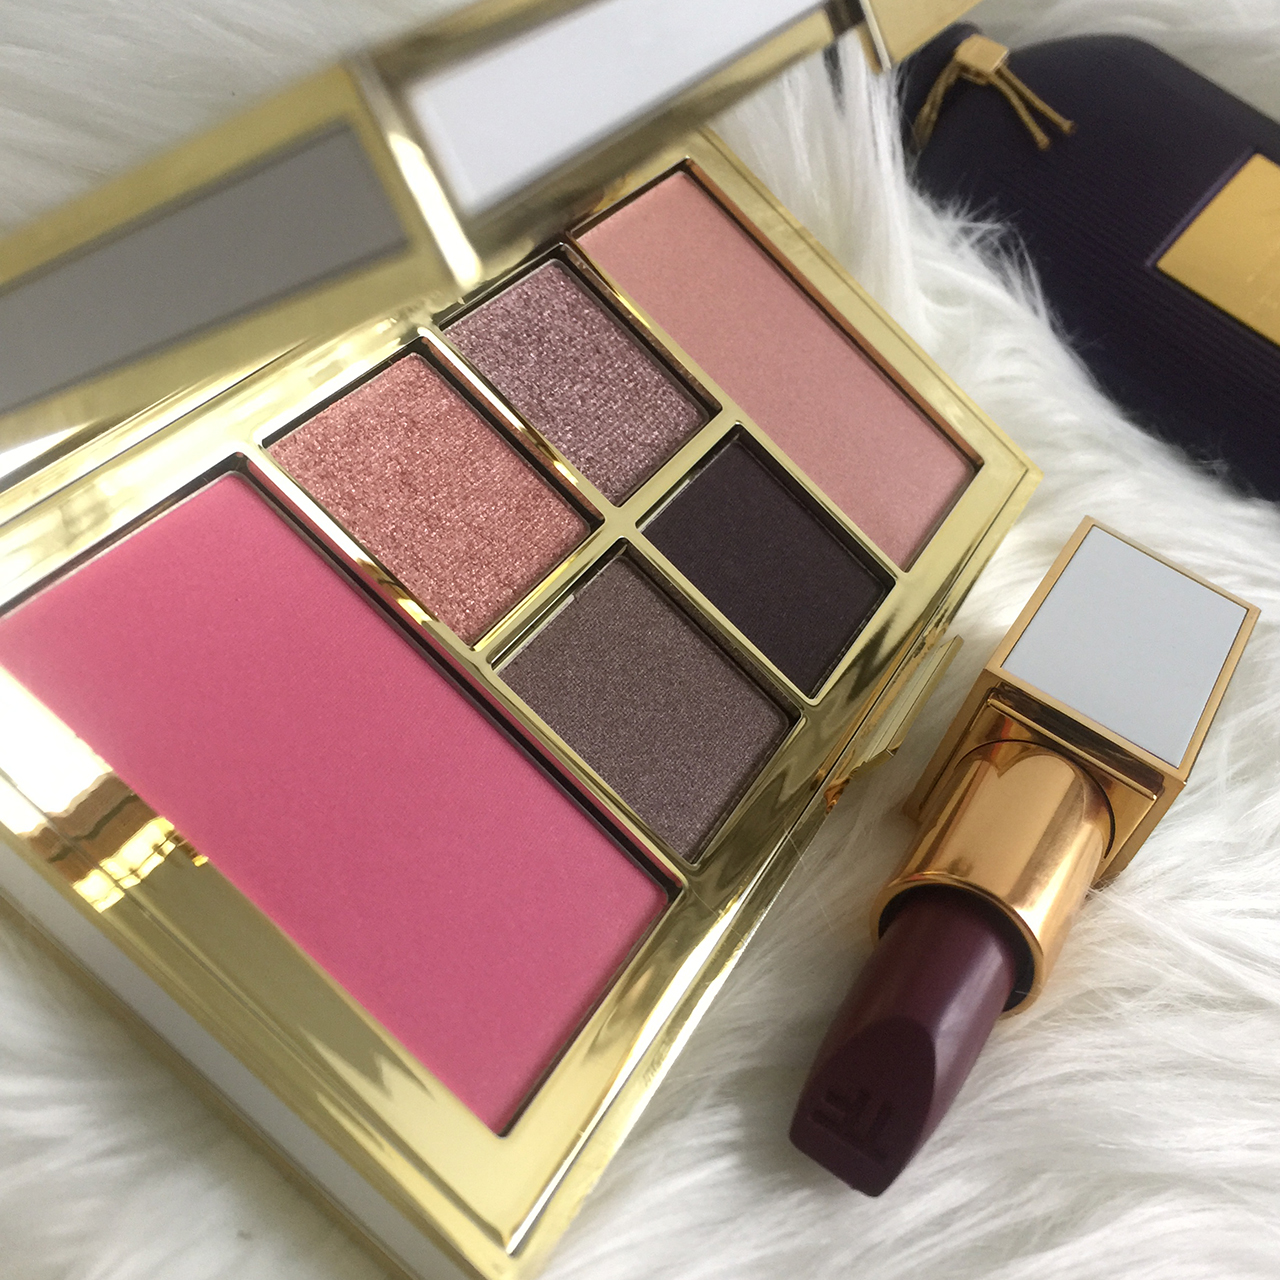 Tom Ford Winter Soleil Cool-toned Palette